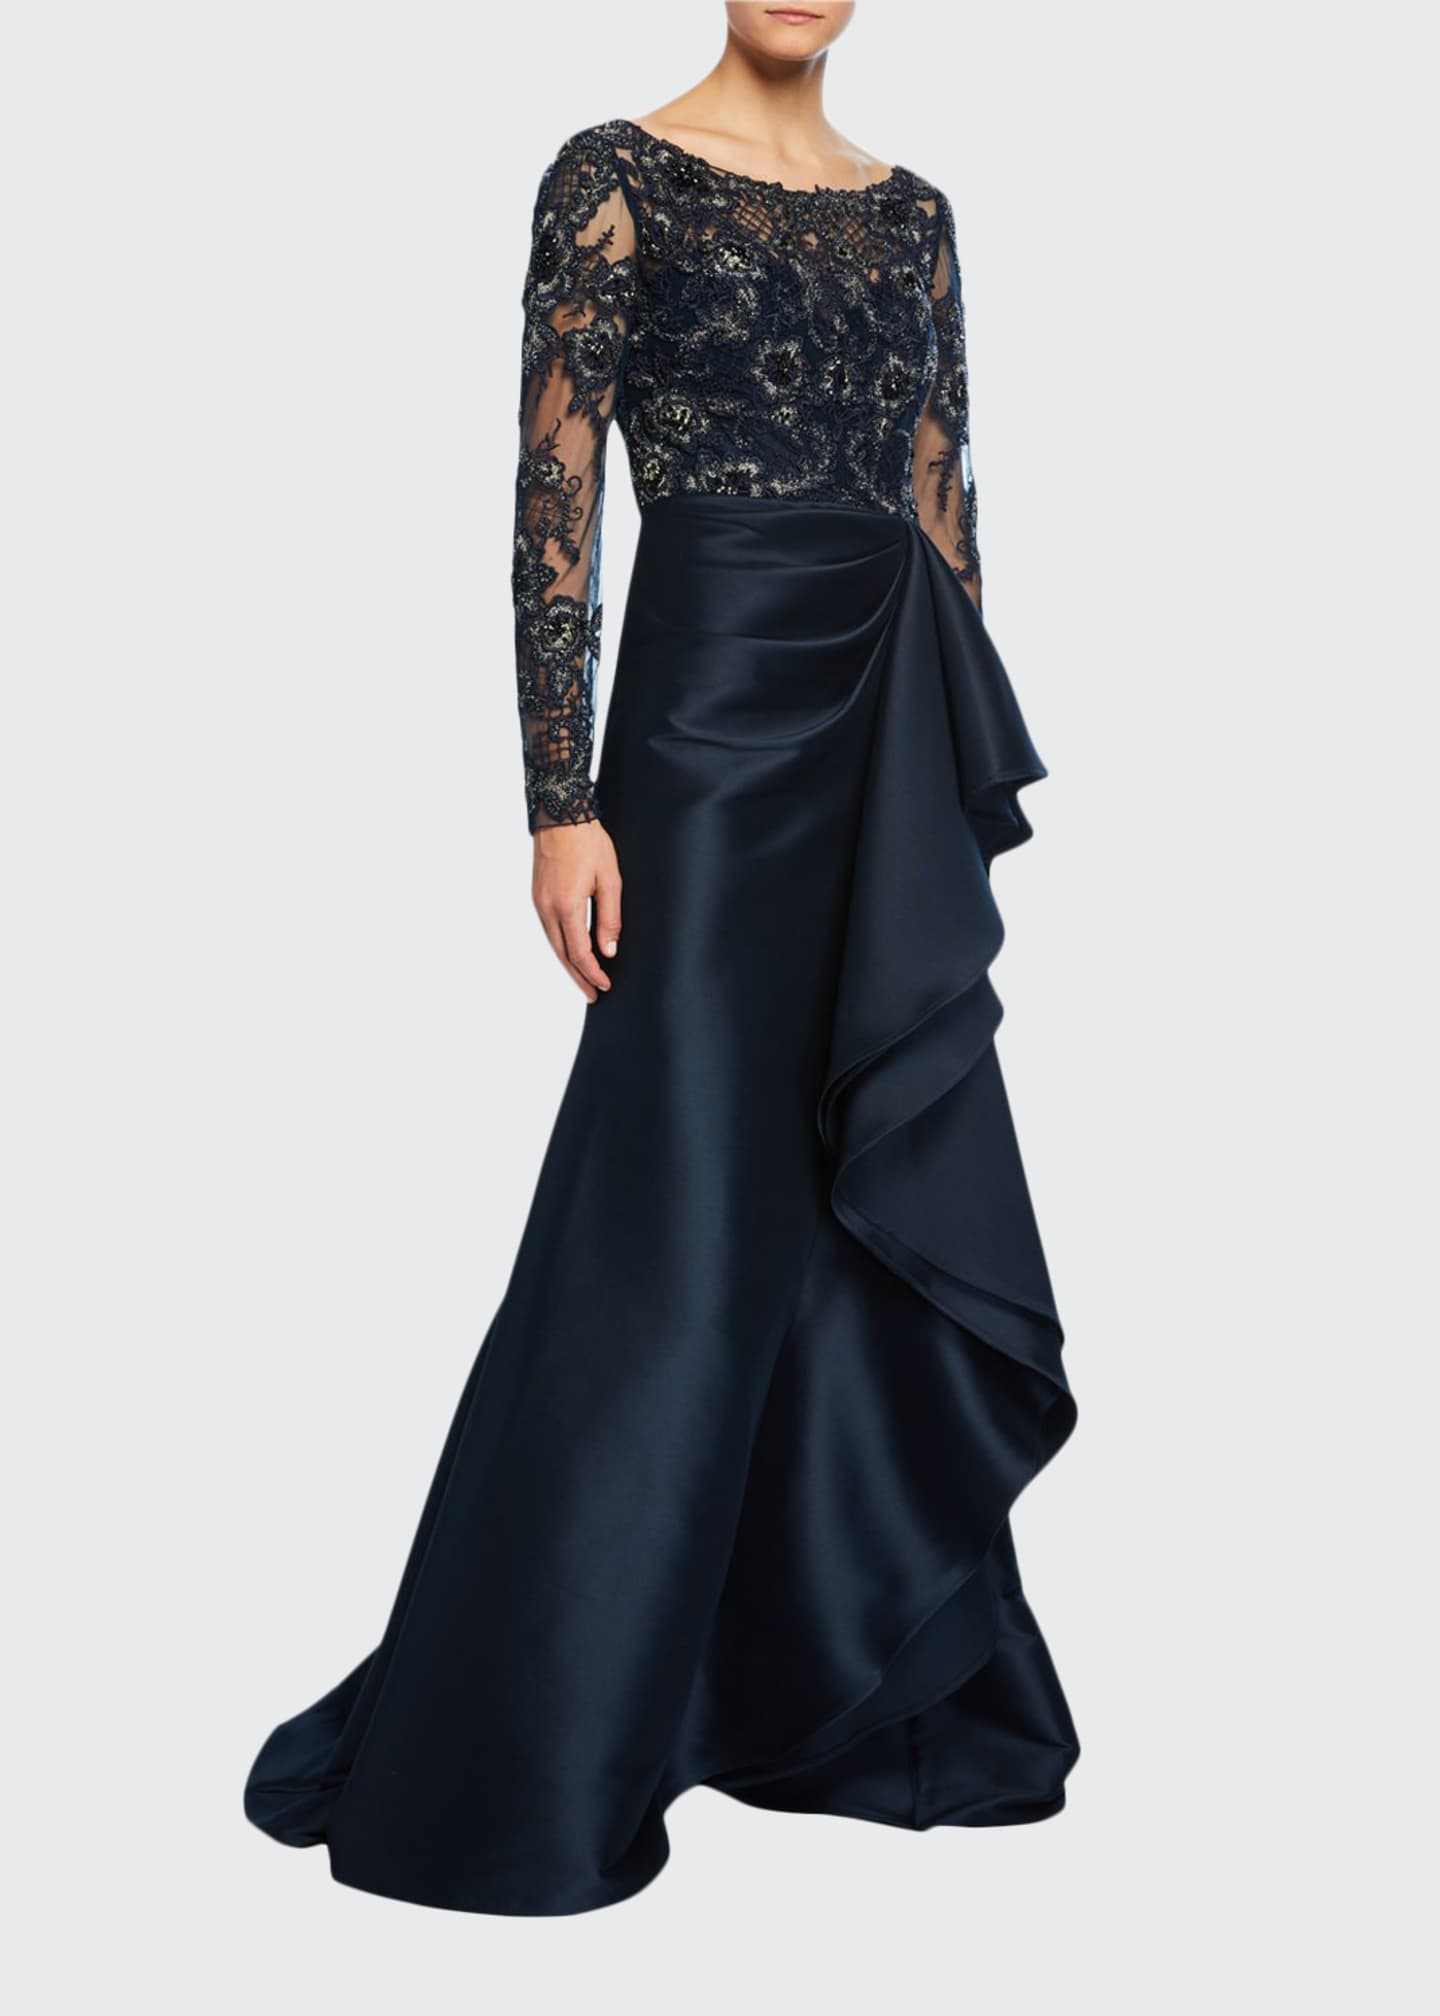 Badgley Mischka Couture Lace Bodice Keyhole-Back Gown